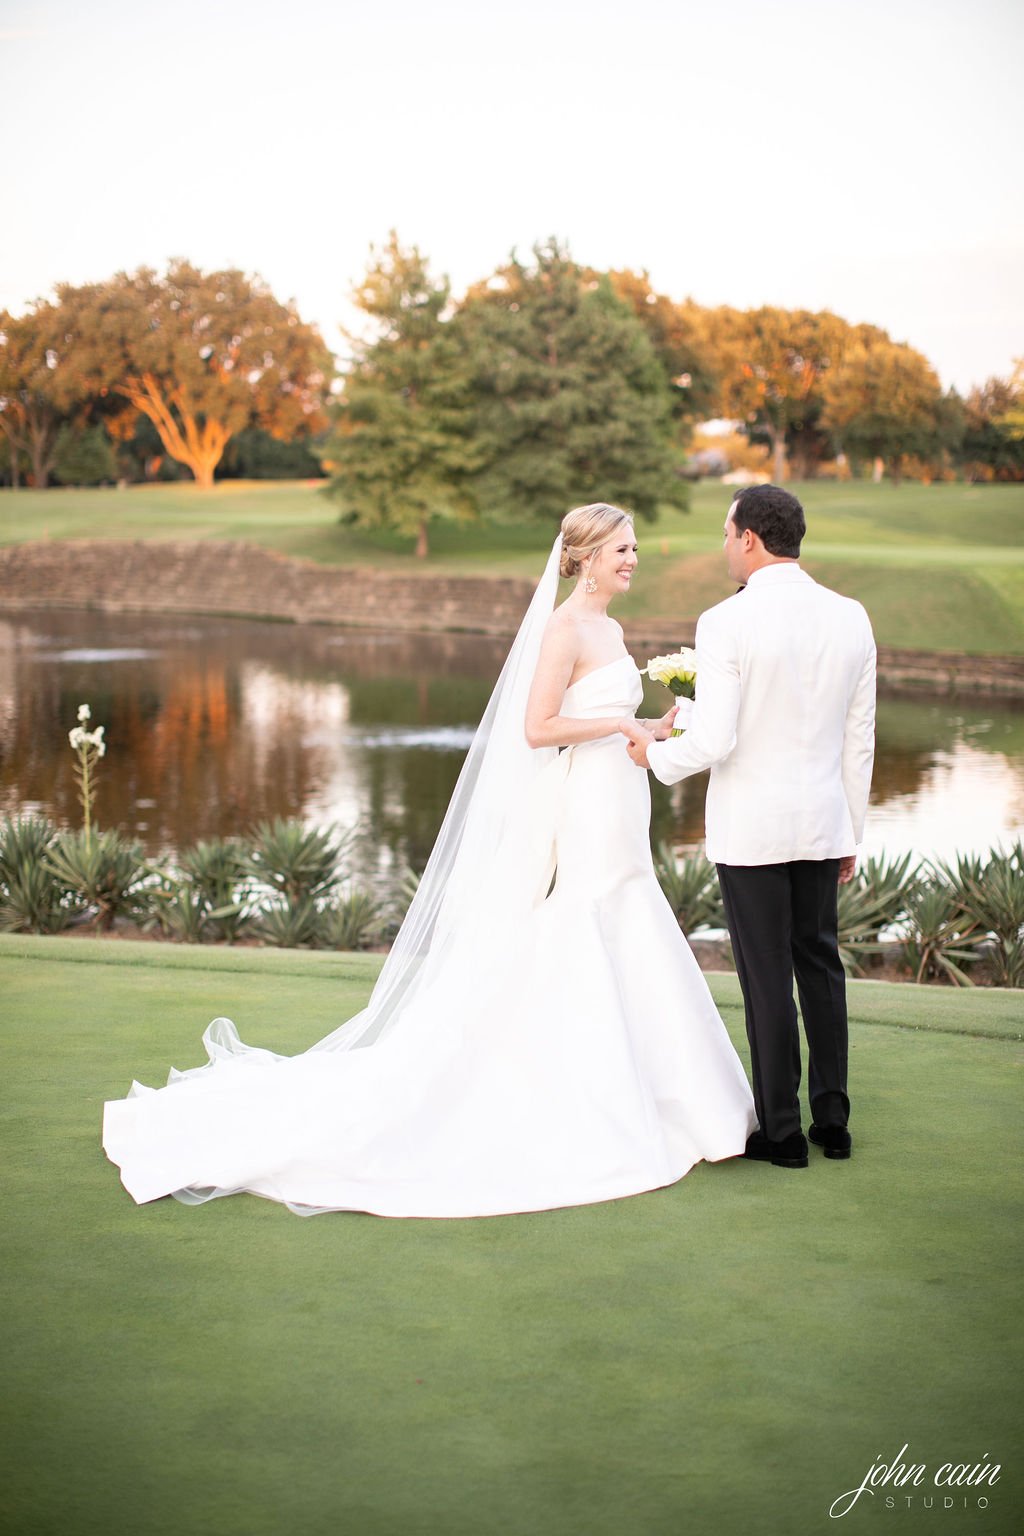 Dallas Country Club Wedding - Timeless Dallas Wedding - Wedding Planner in Dallas - Allday Events - Portraits - 119.JPG